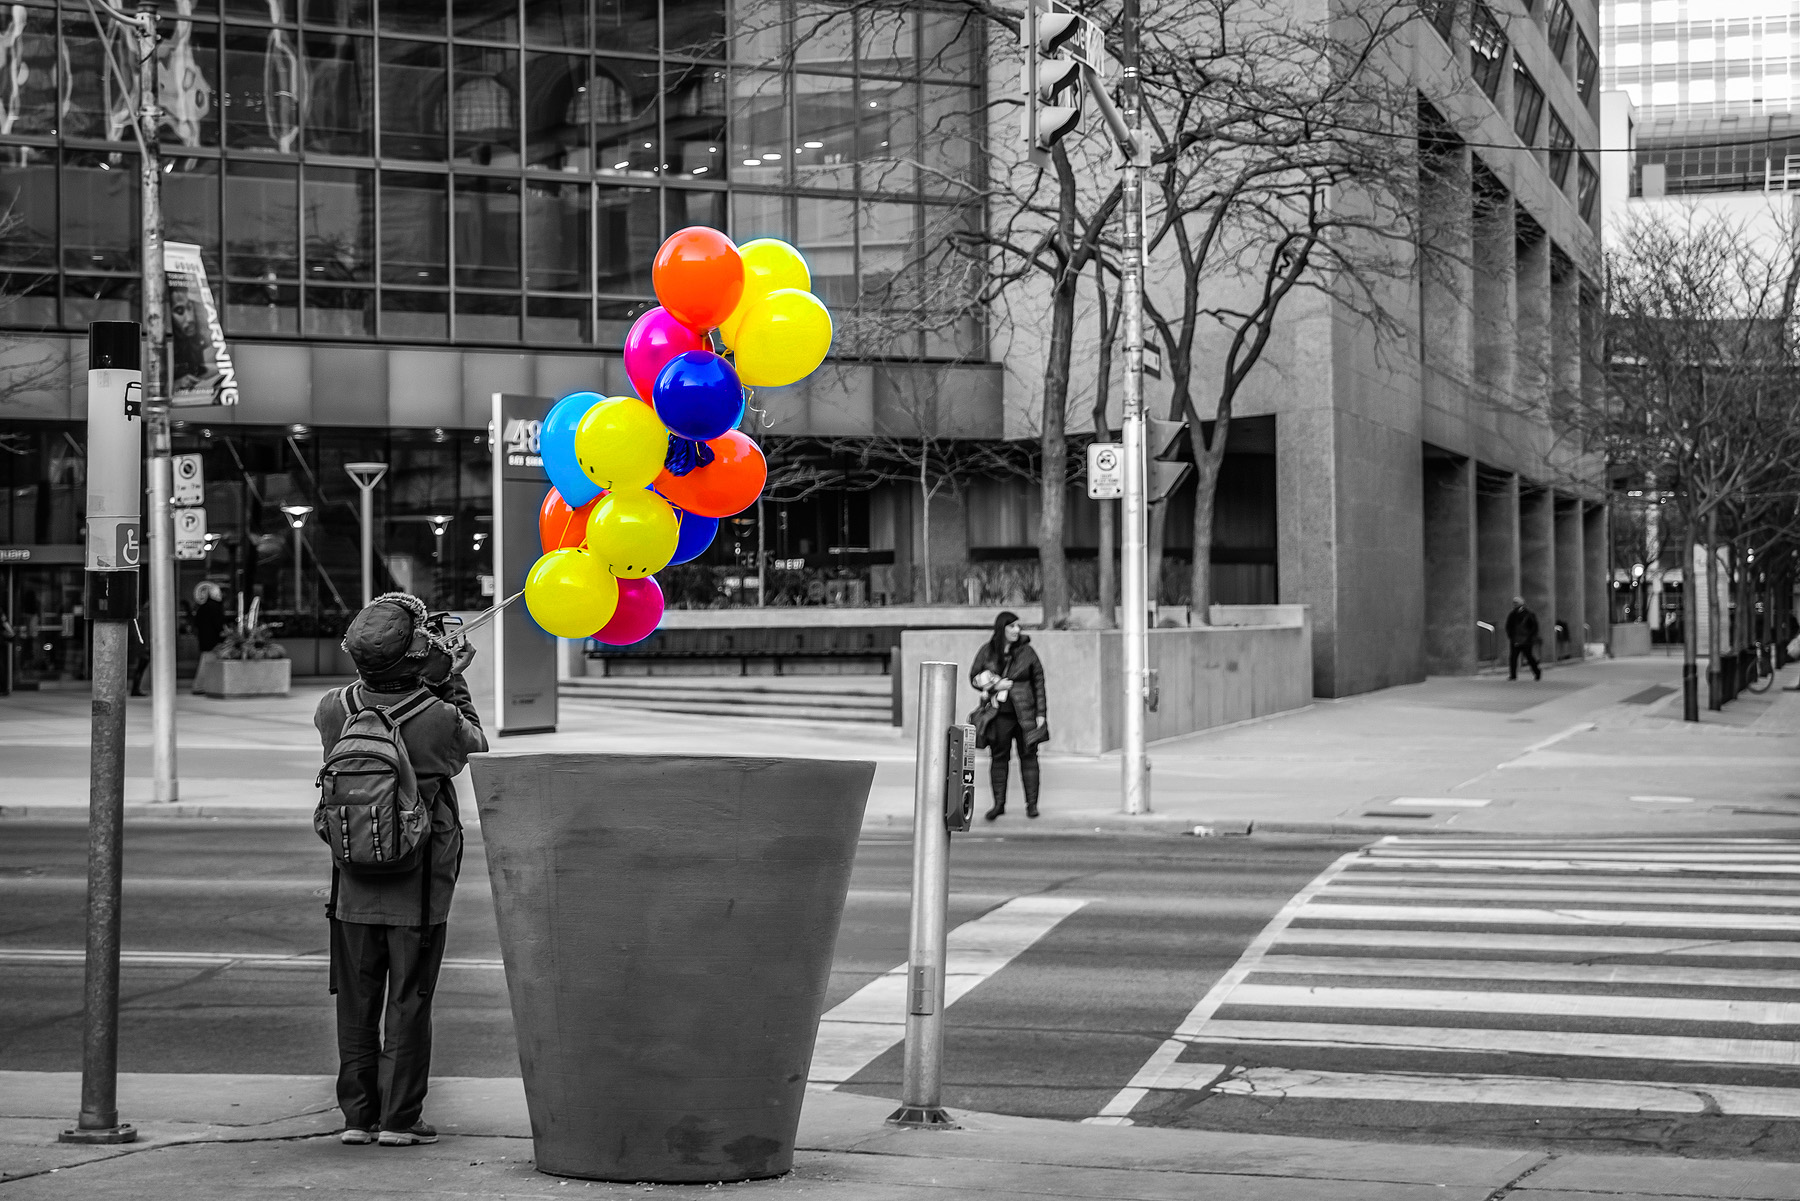 DDI_0990 balloons bw colour website